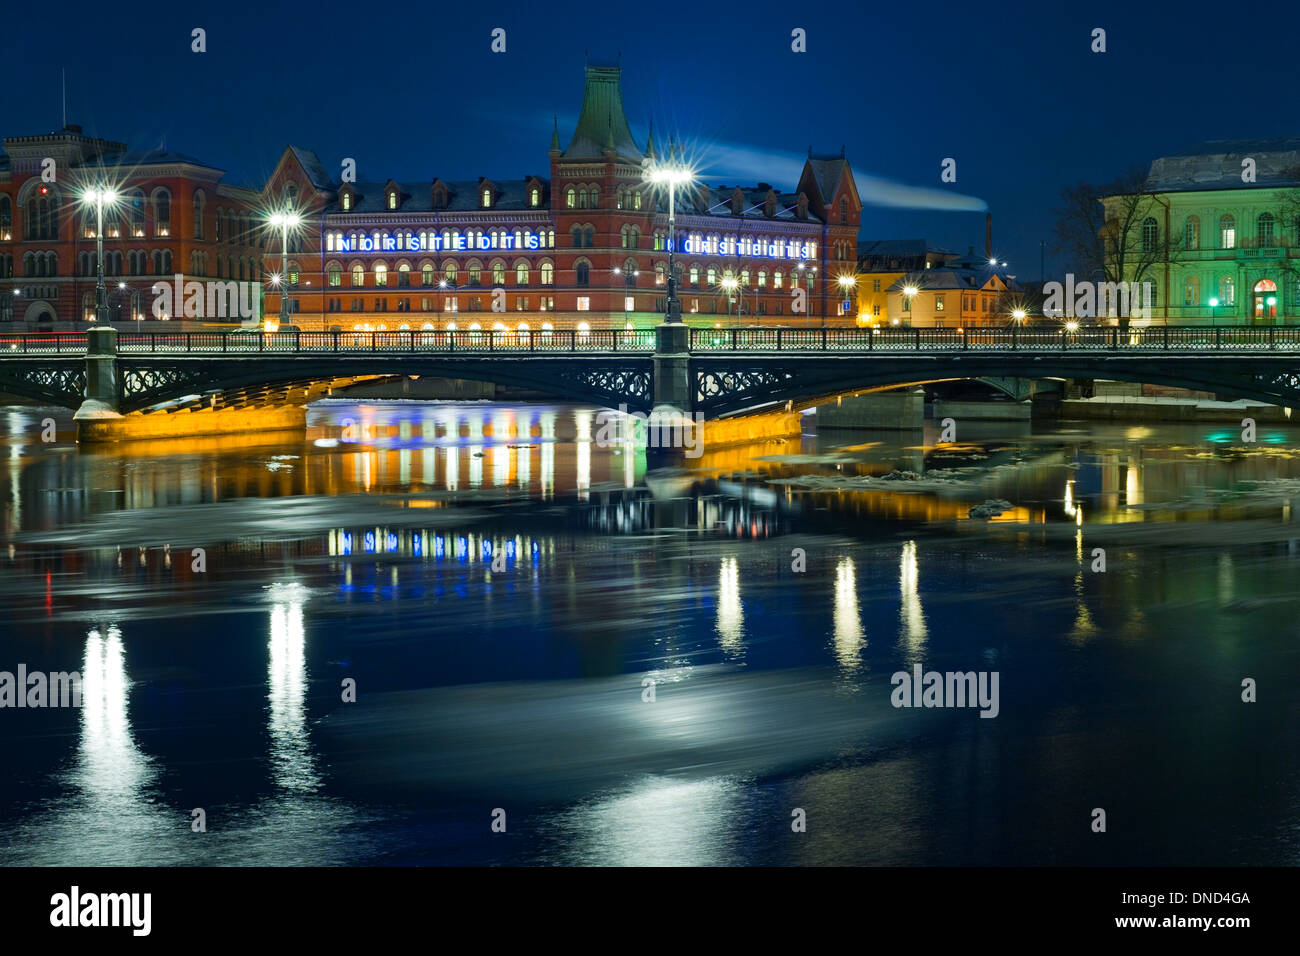 Winter night view of Vasabron and Riddarholmen, seen from Strömgatan, Stockholm.  Melting sheets of ice flow past Stock Photo